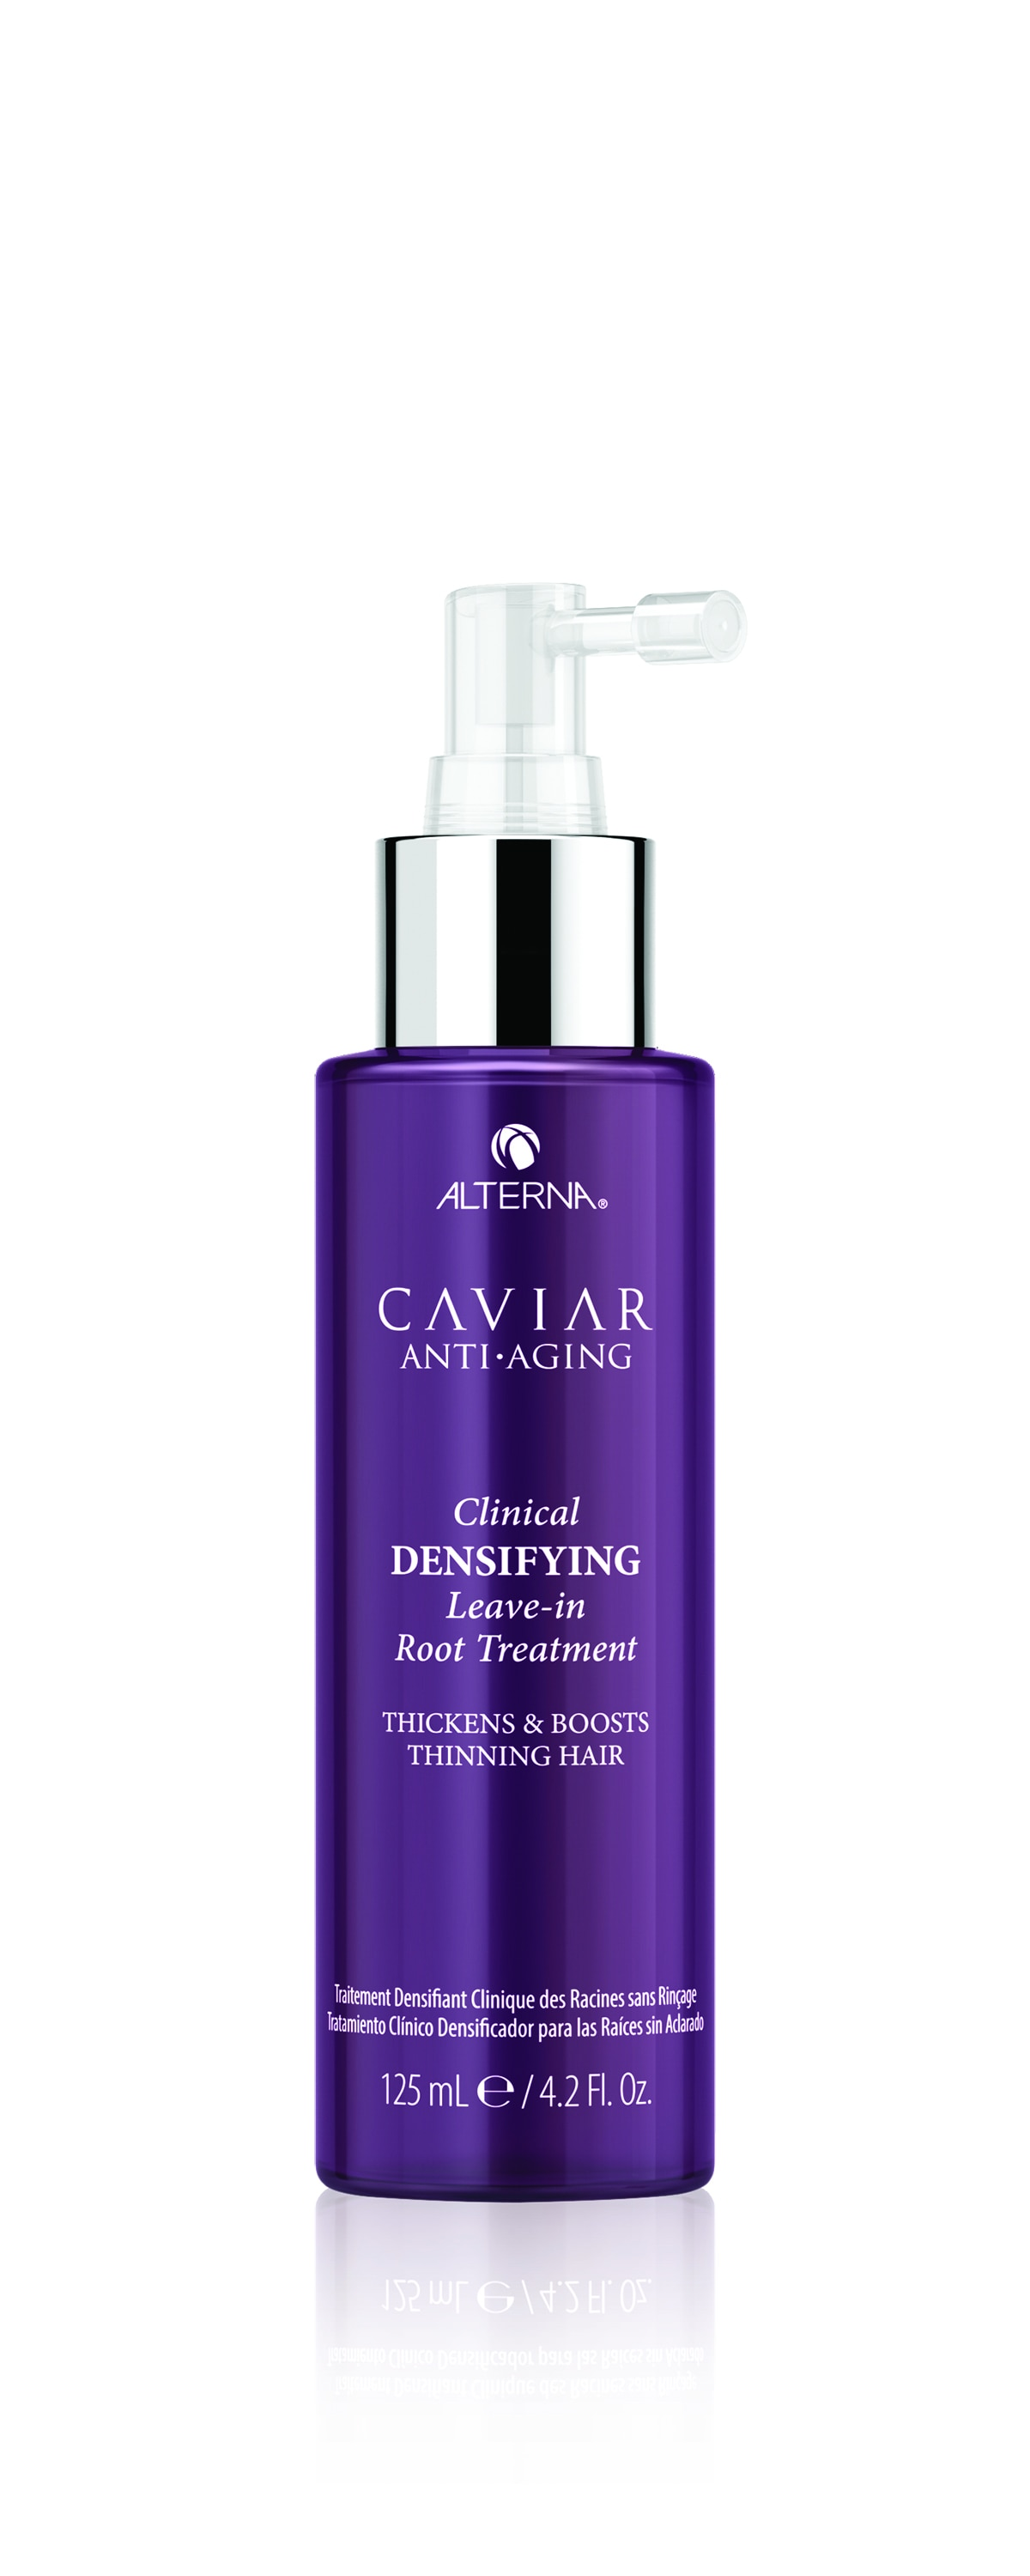 CAVIAR ANTI-AGING CLINICAL DENSIFYING LEAVE-IN ROOT TREATMENT (ESTIMULANTE)